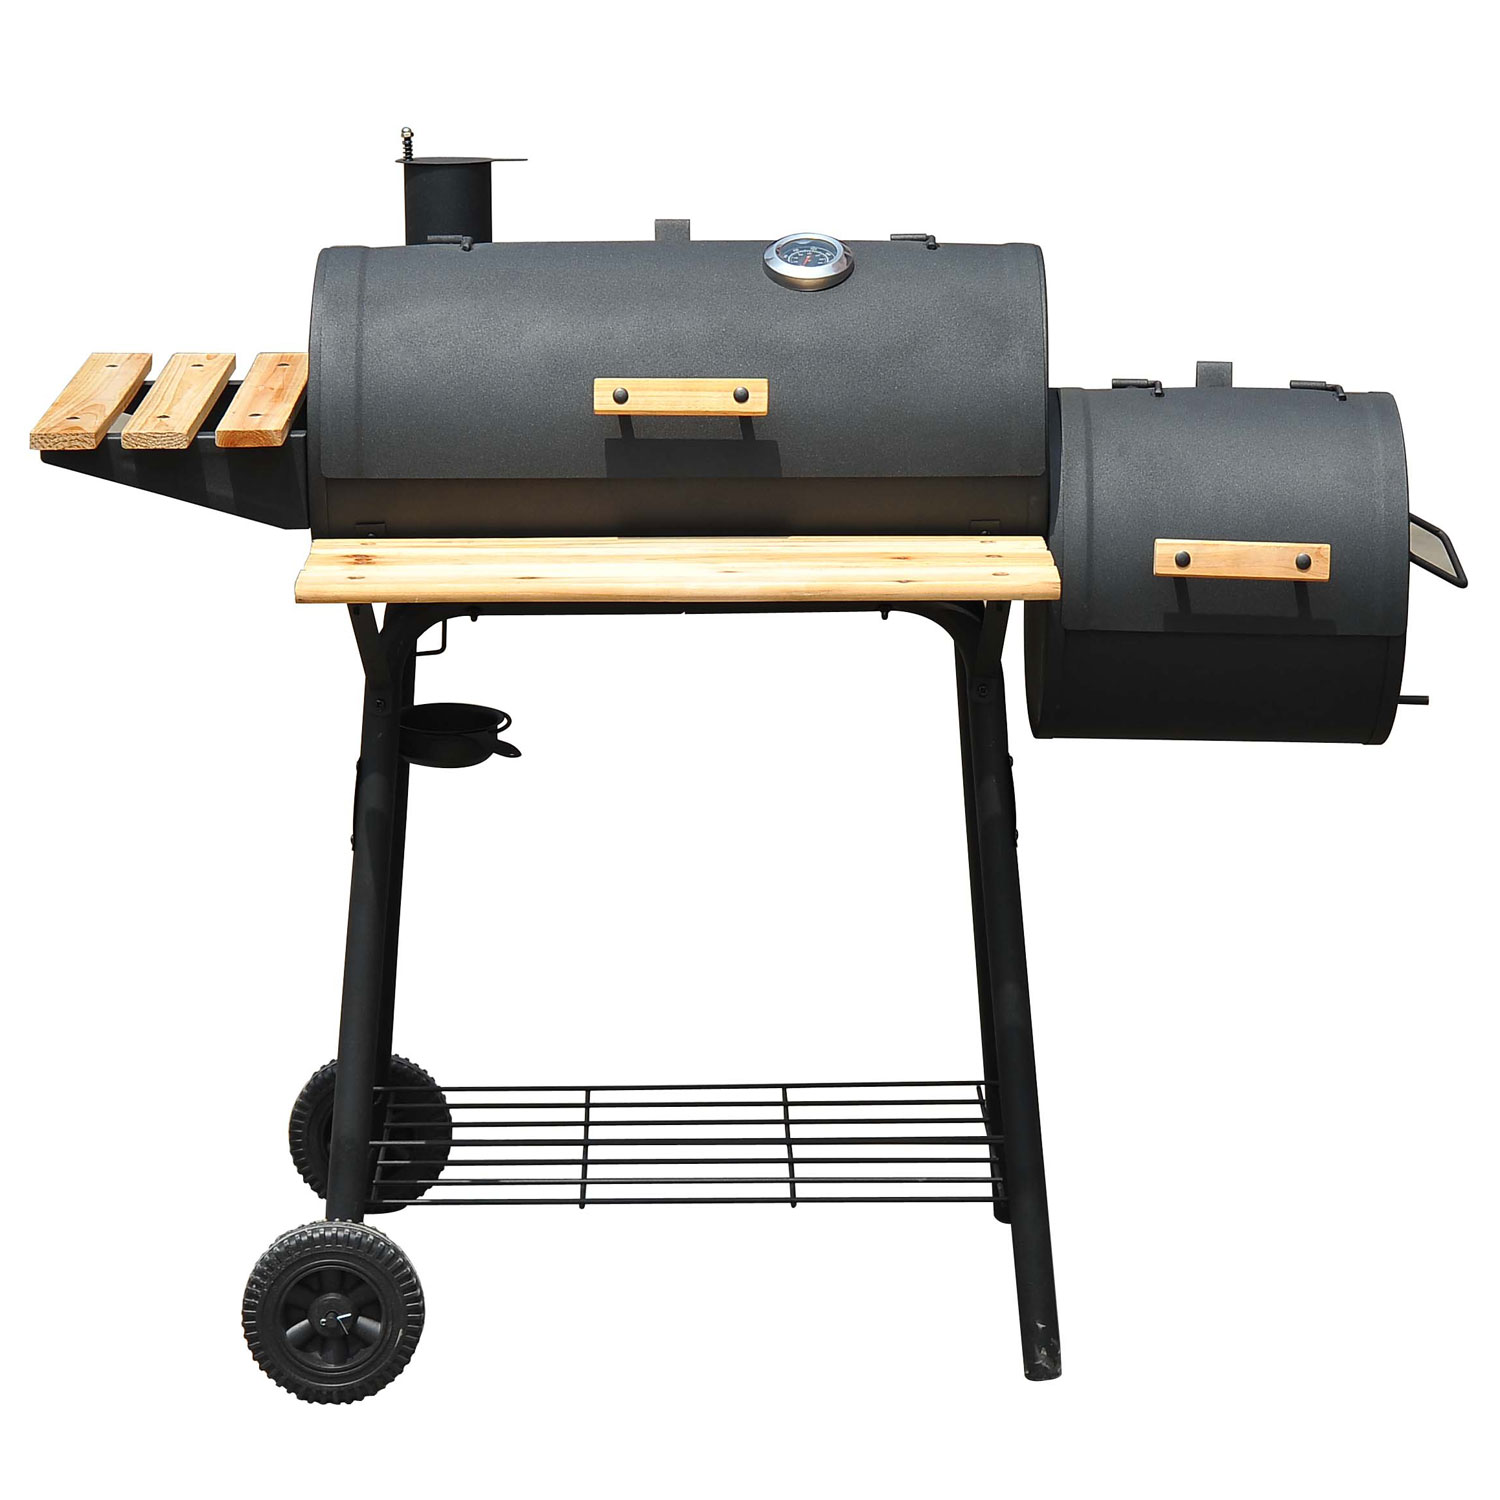 Outsunny Barbeque Charcoal Grill Offset Smoker Combo